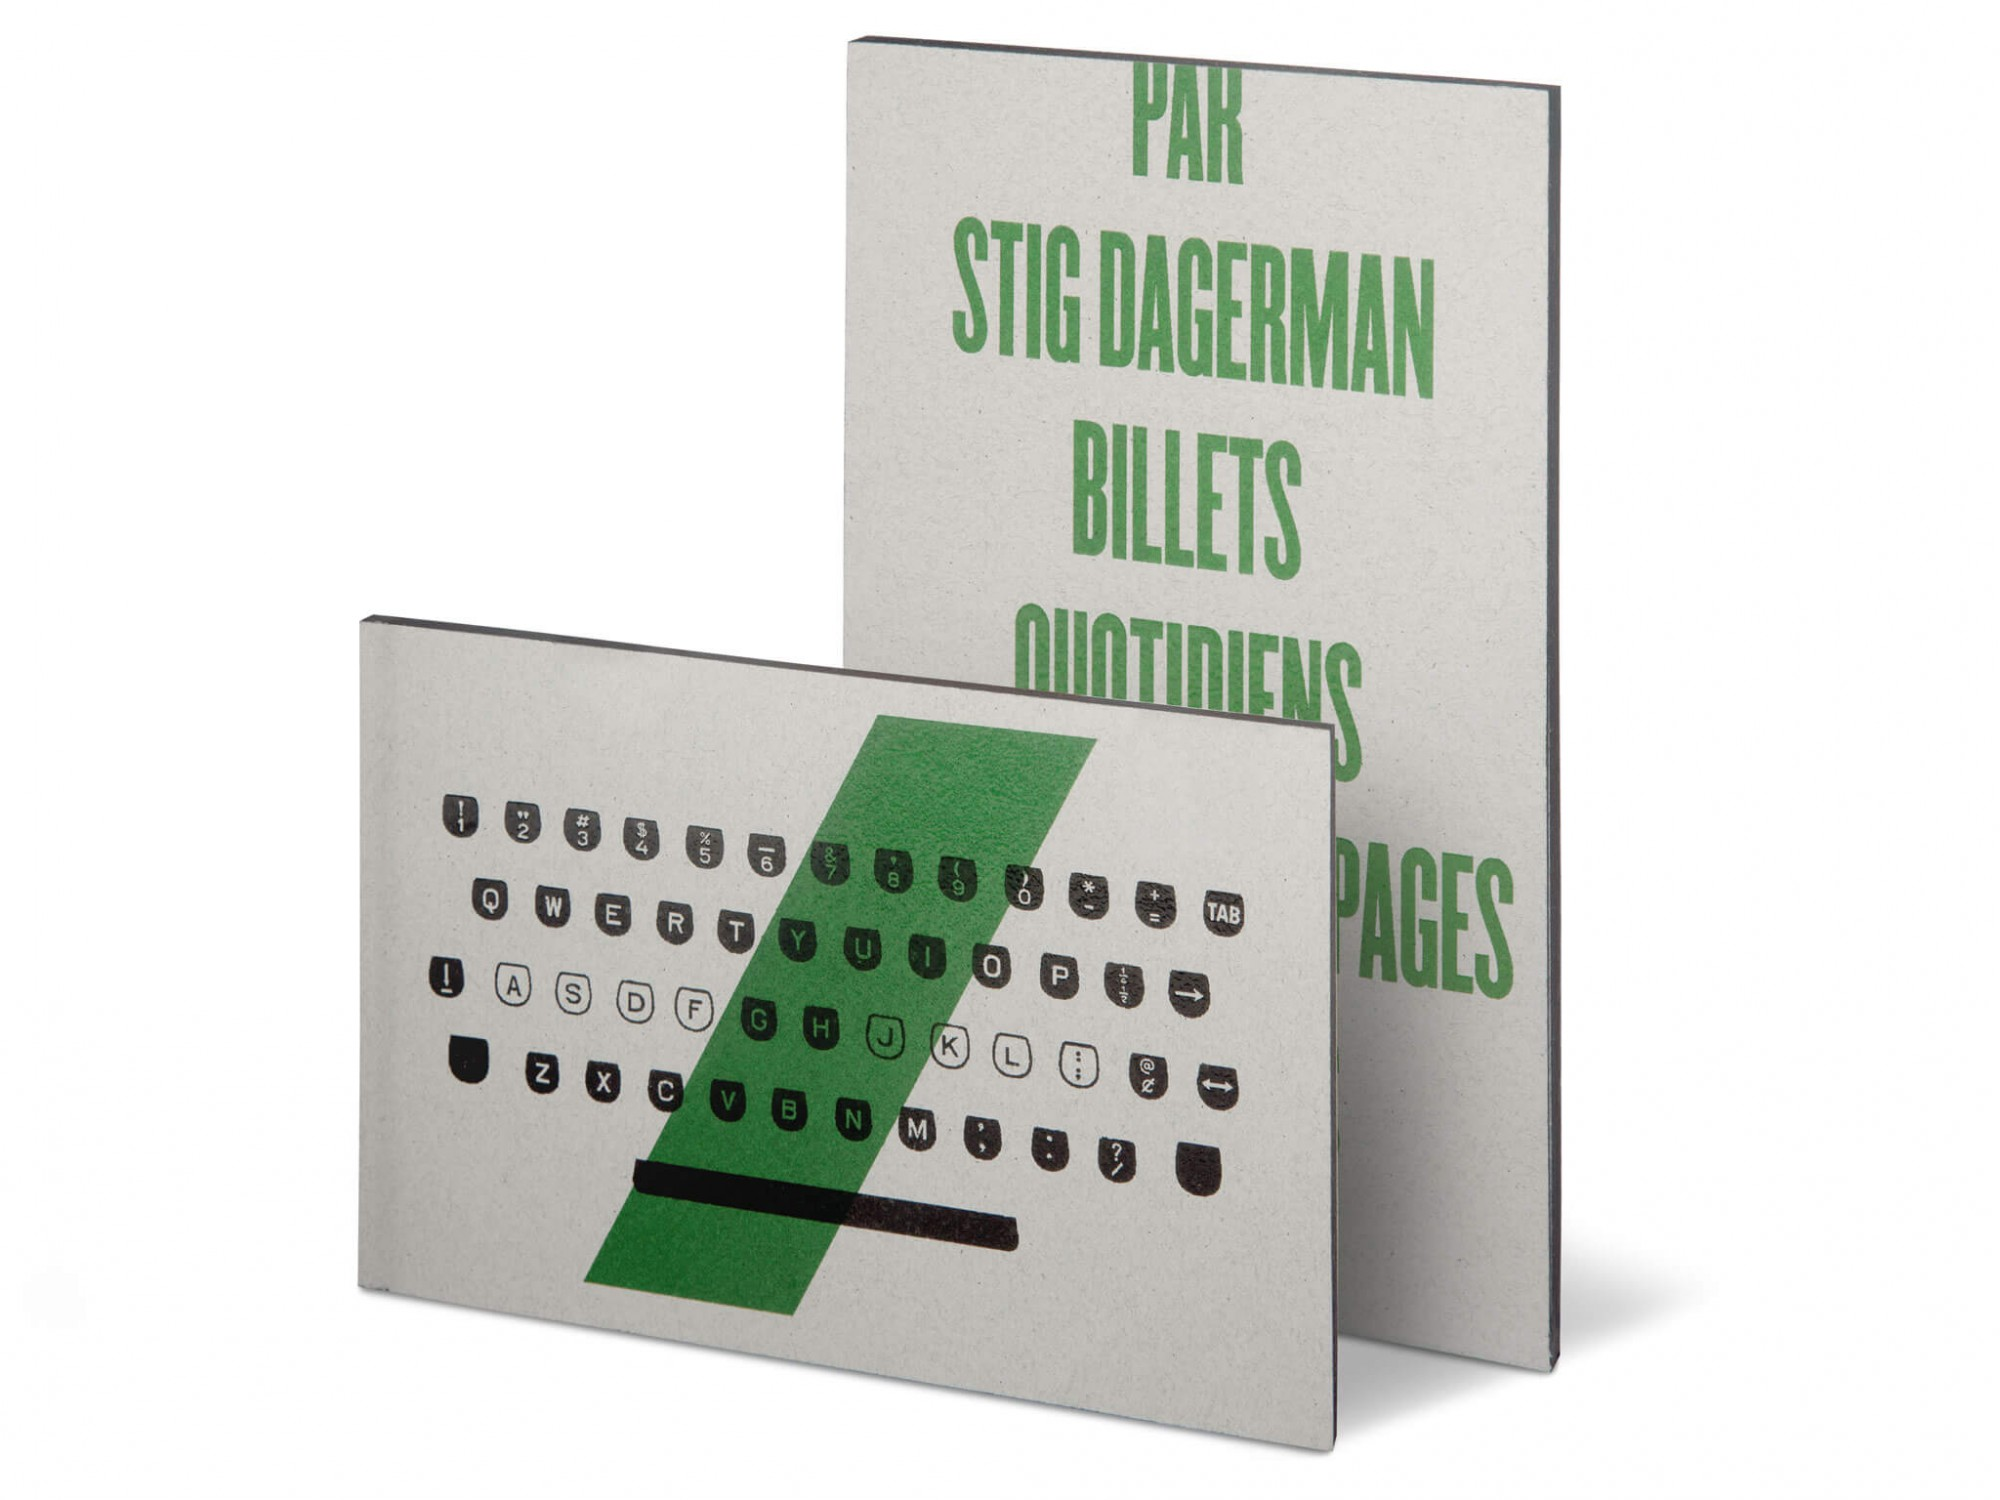 Stig Dagerman Billets quotidiens Éditions cent pages couverture clavier machine à écrire Dagerman